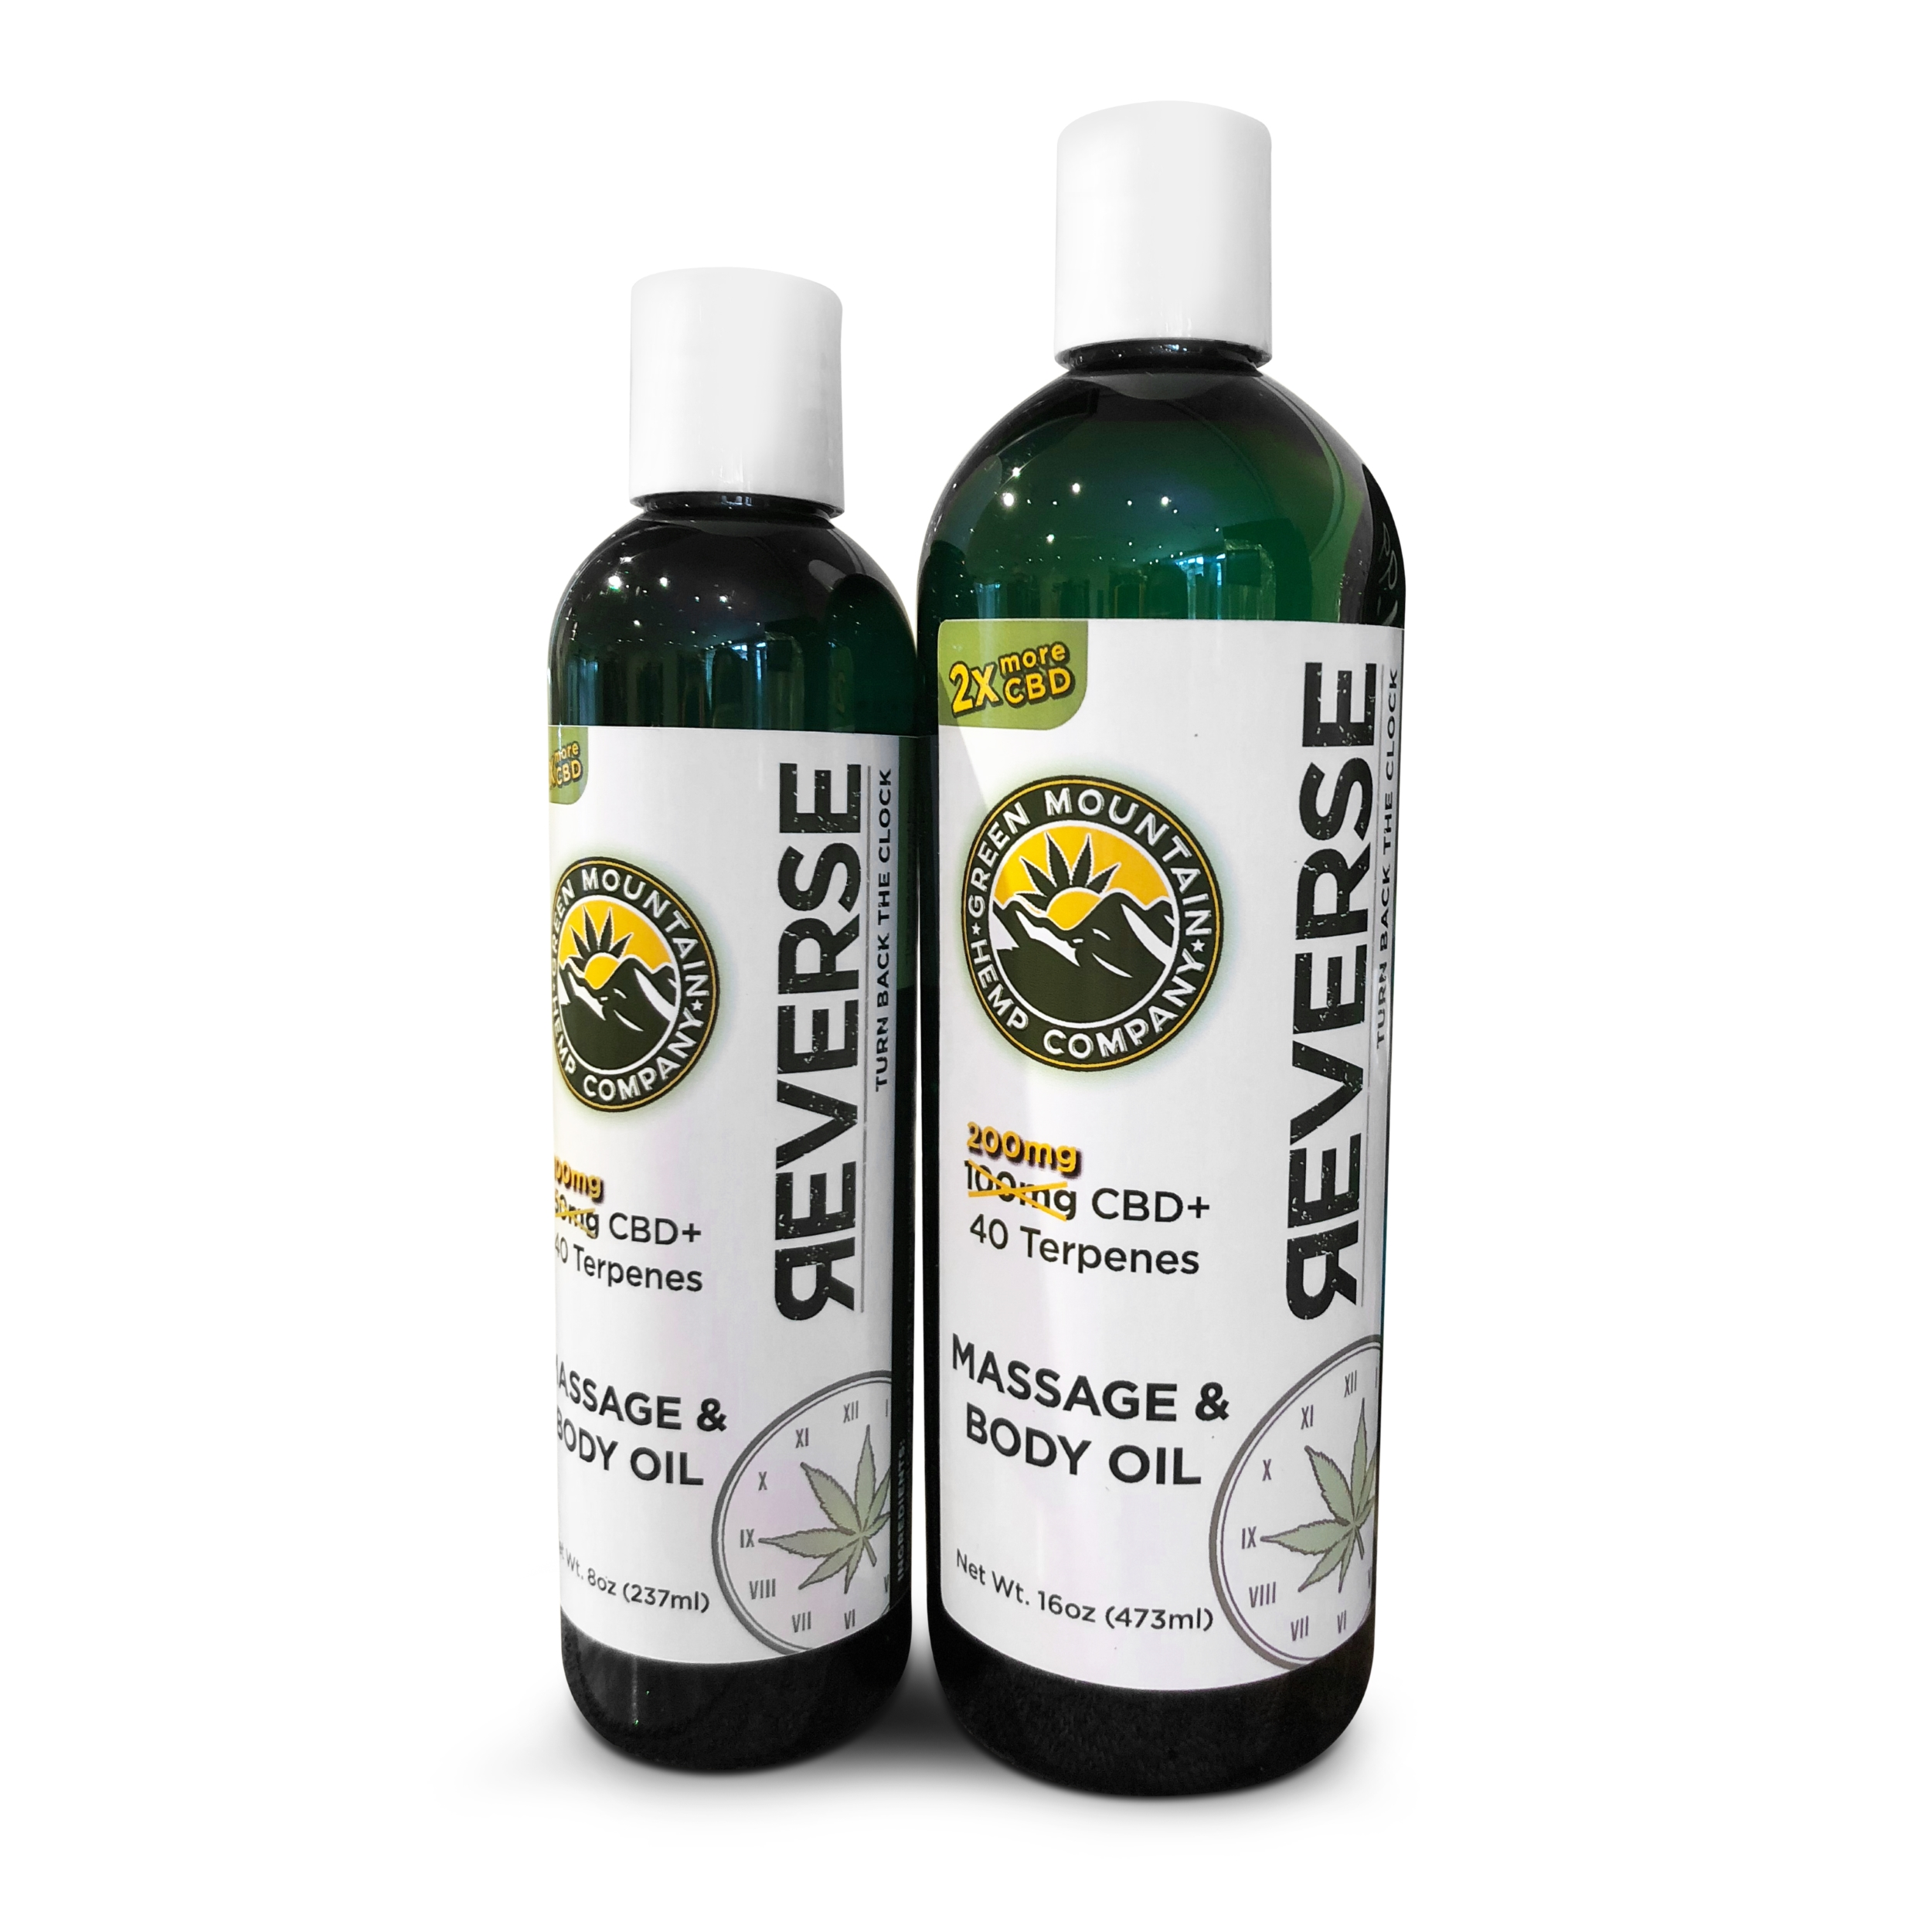 REVERSE CBD Massage Oil / Body Oil - Unscented & Lavender